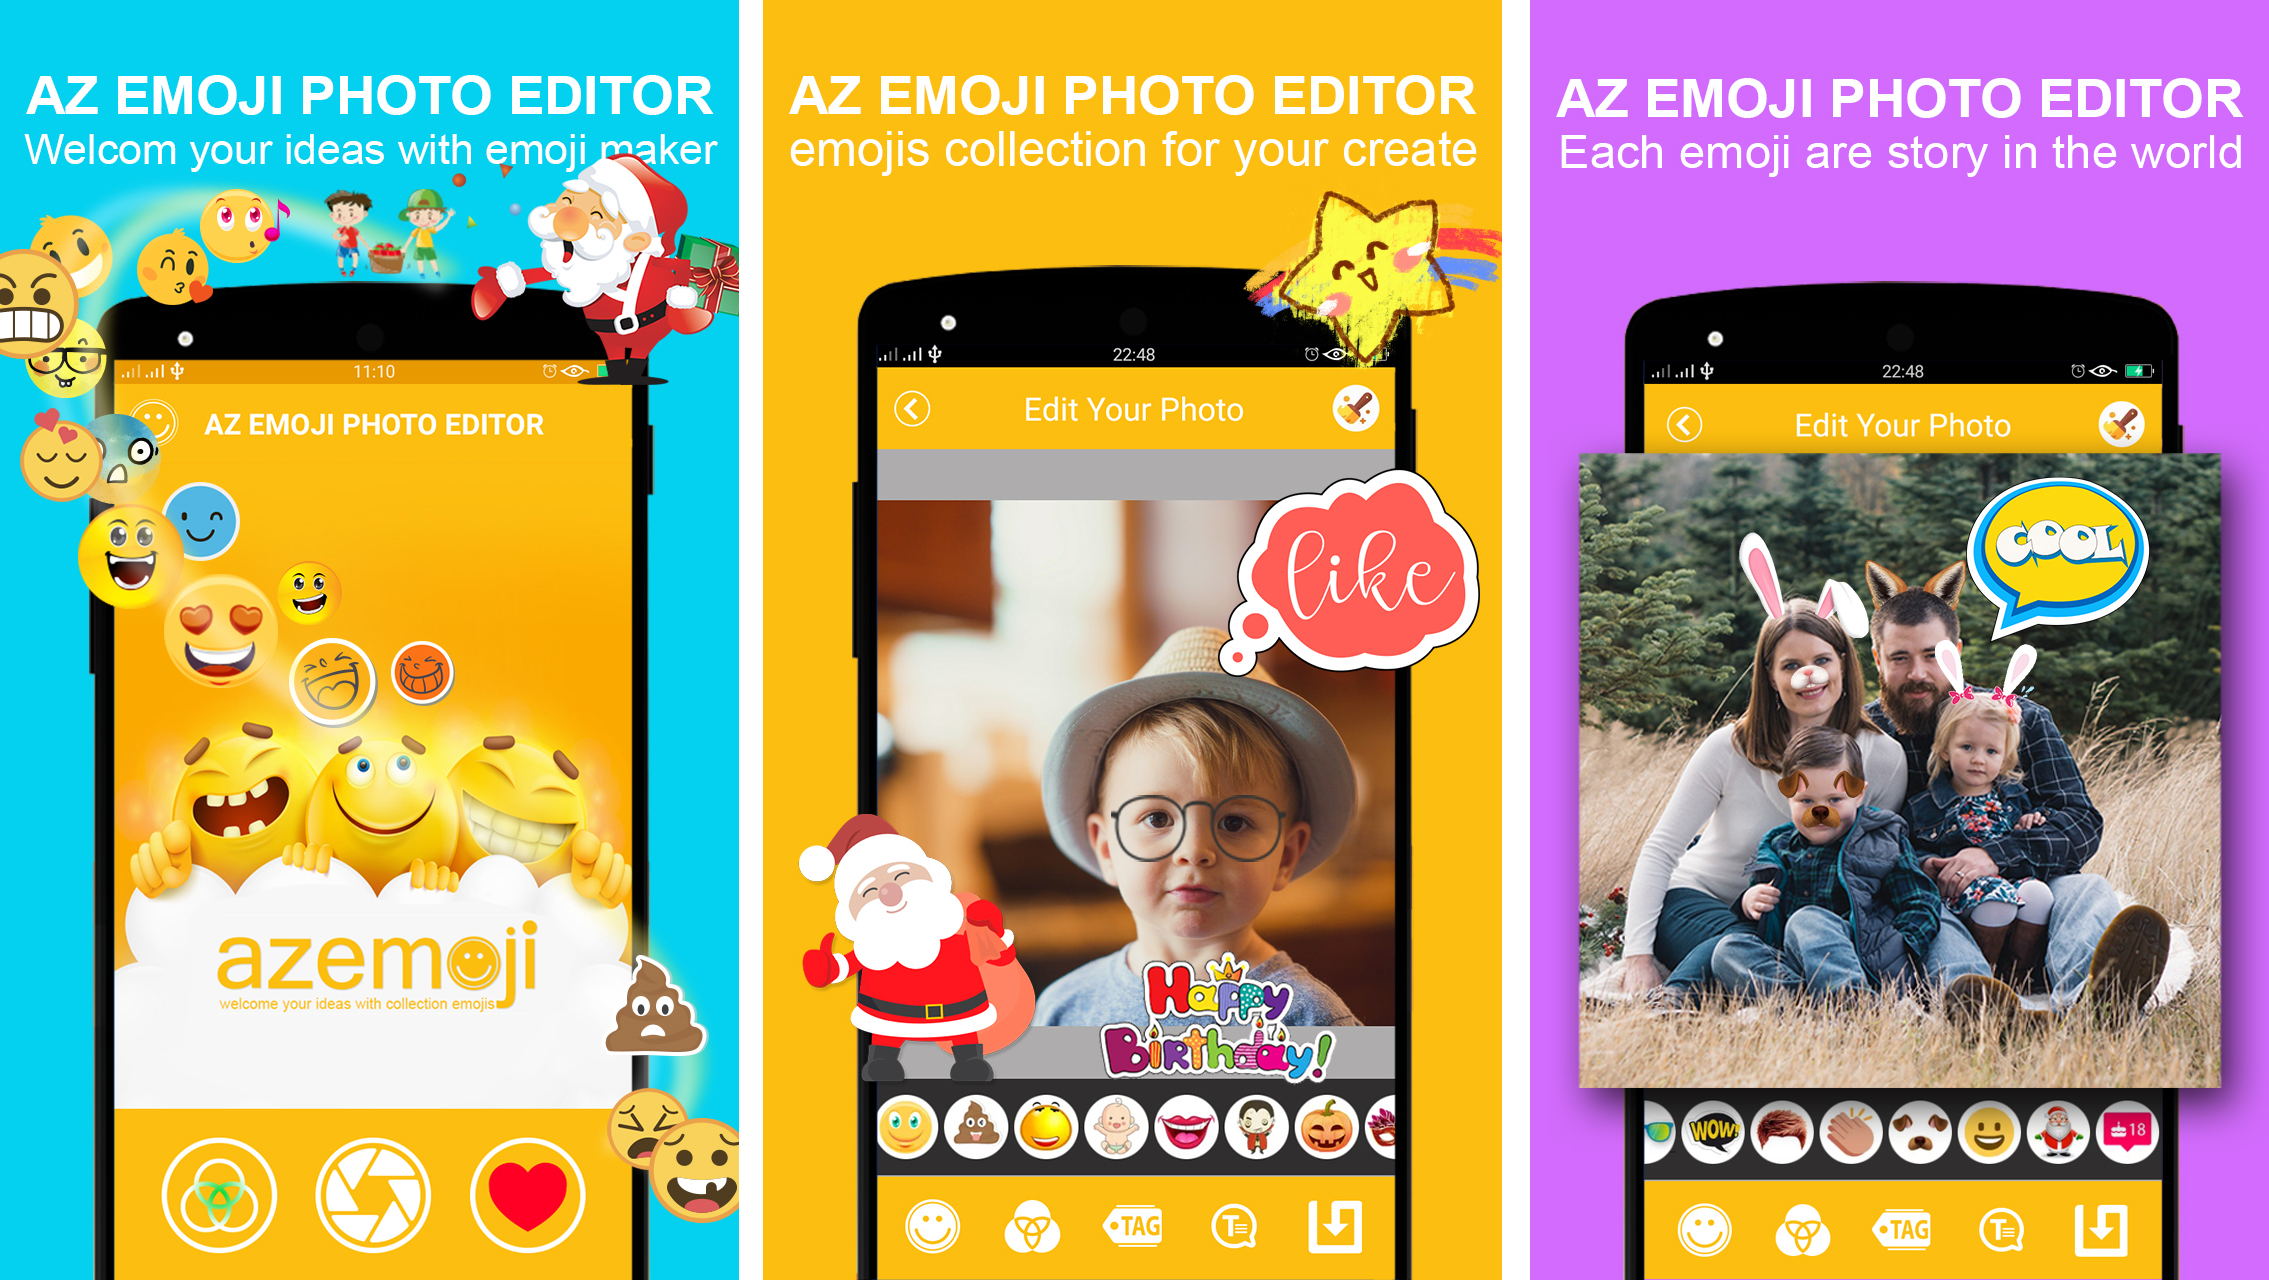 Sell photo editor sticker emoji android app with admob